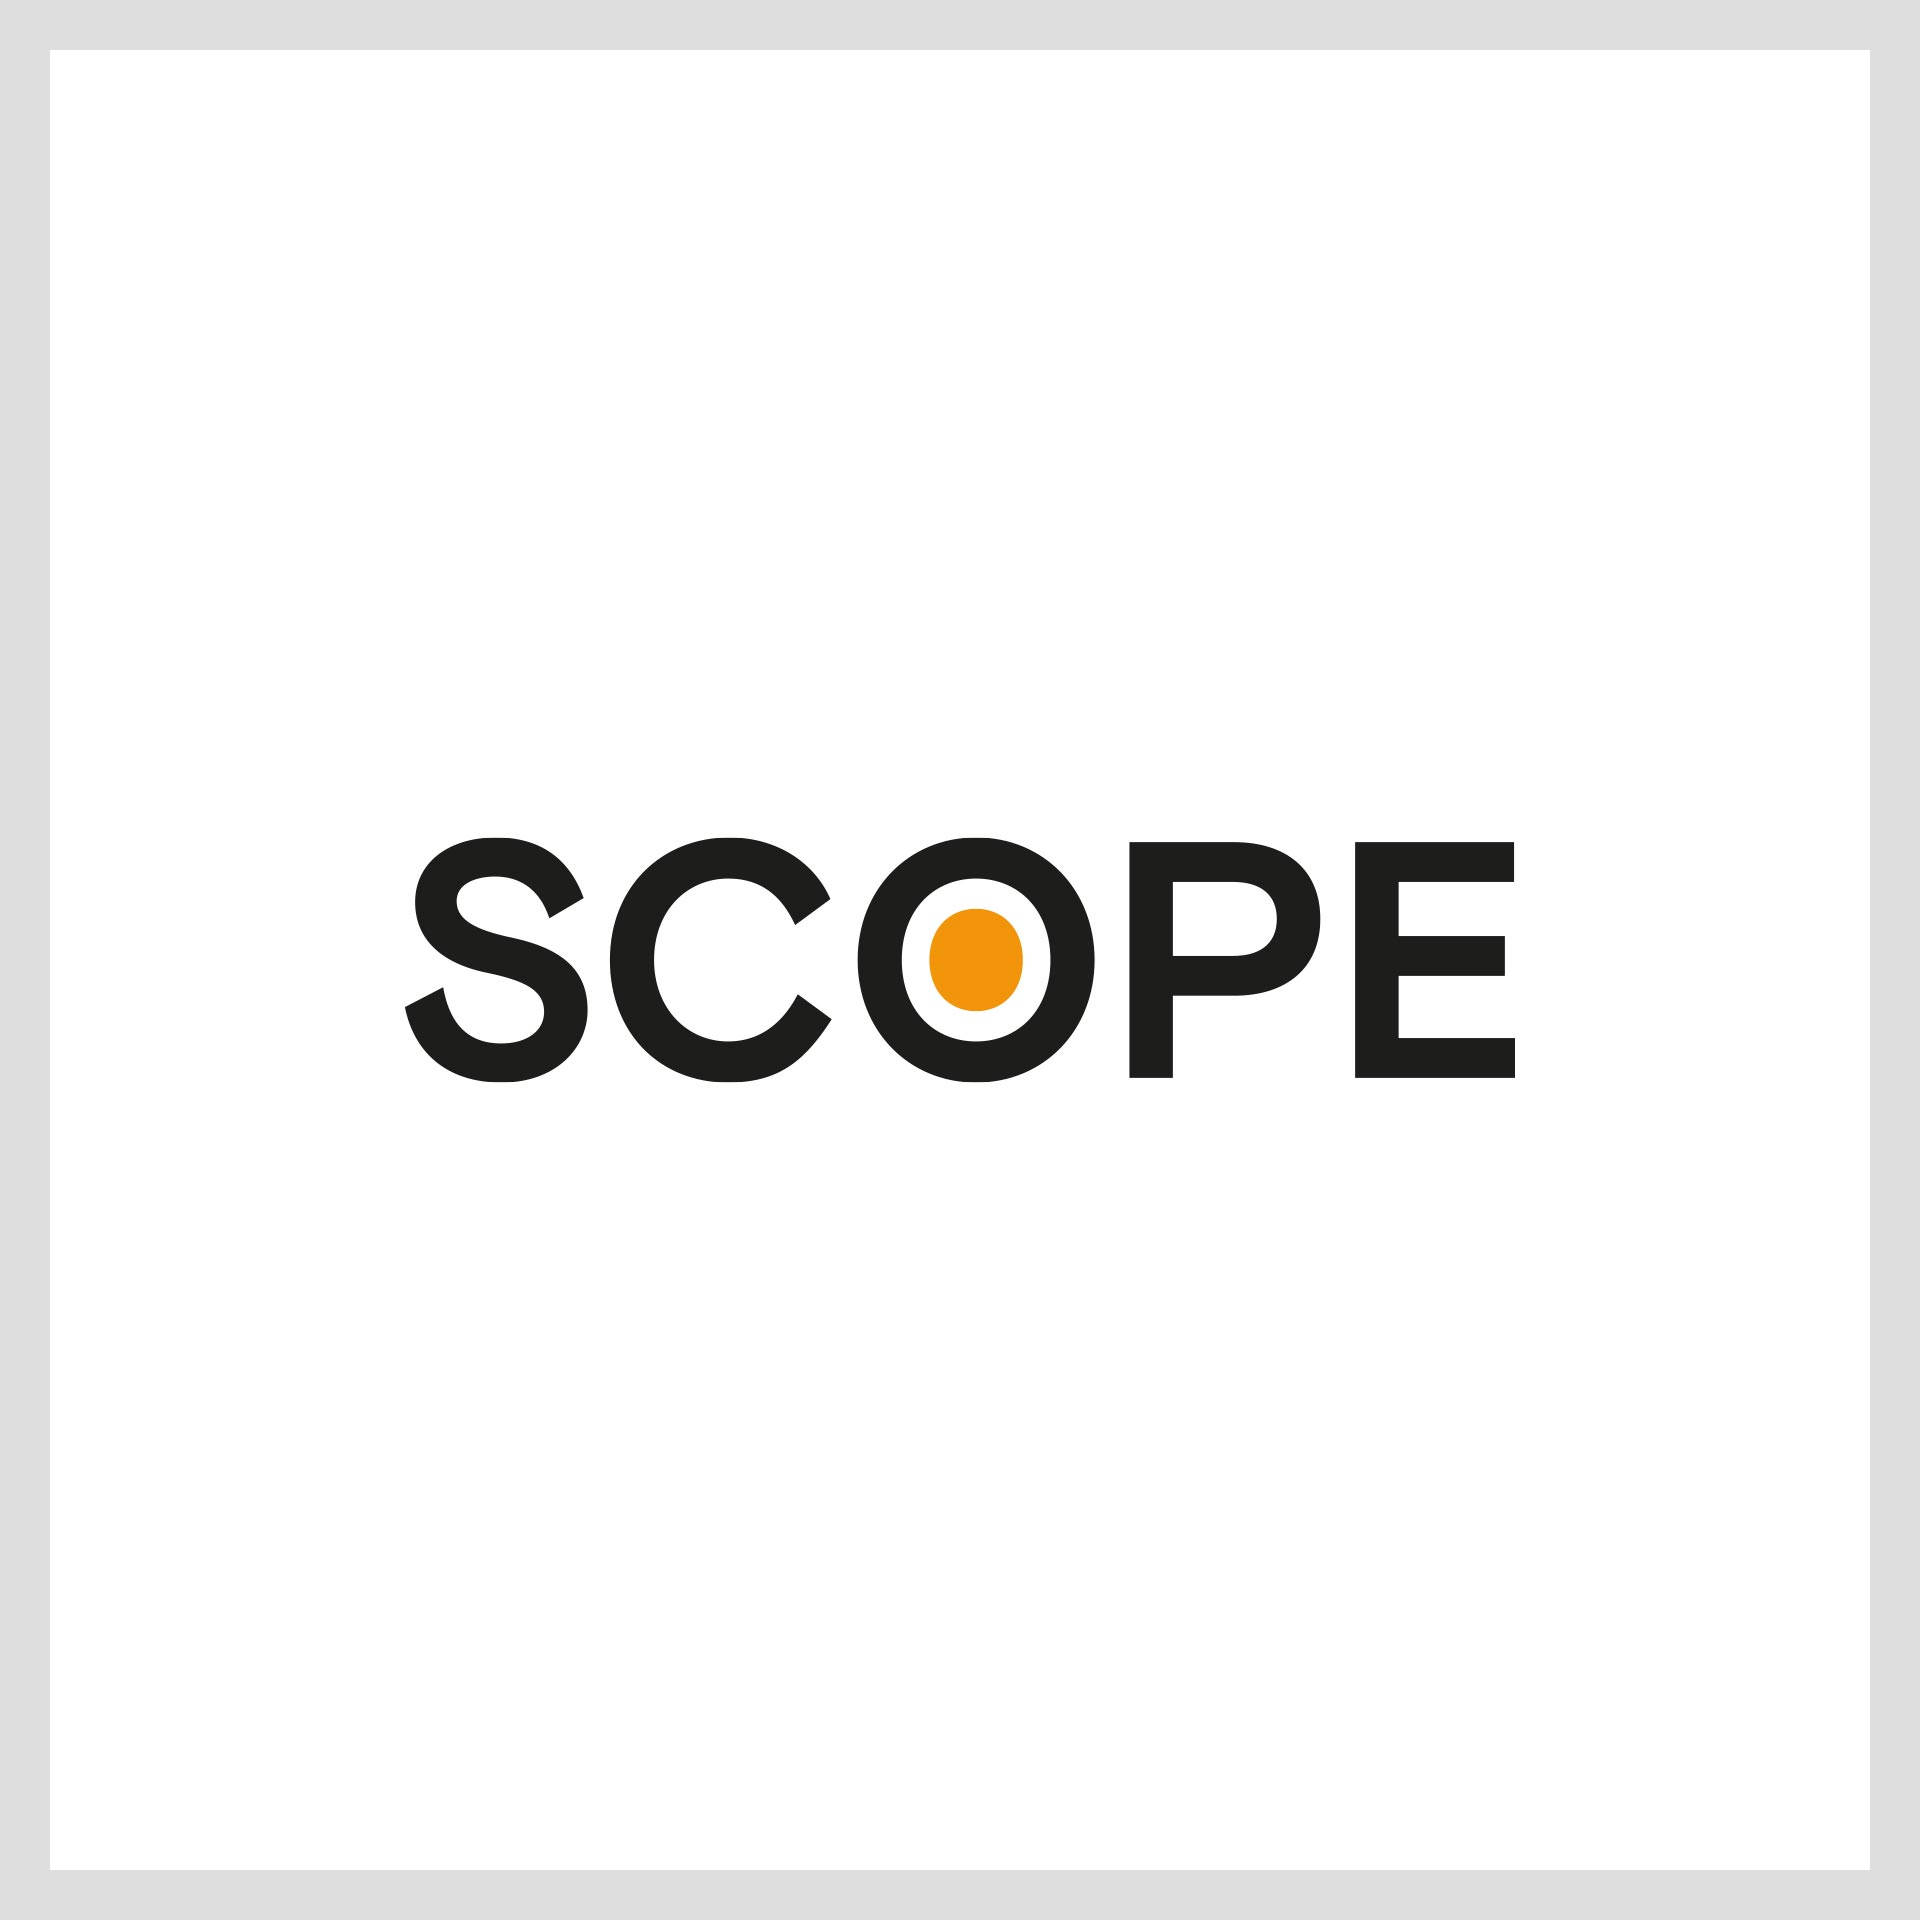 scope oplossingen logo